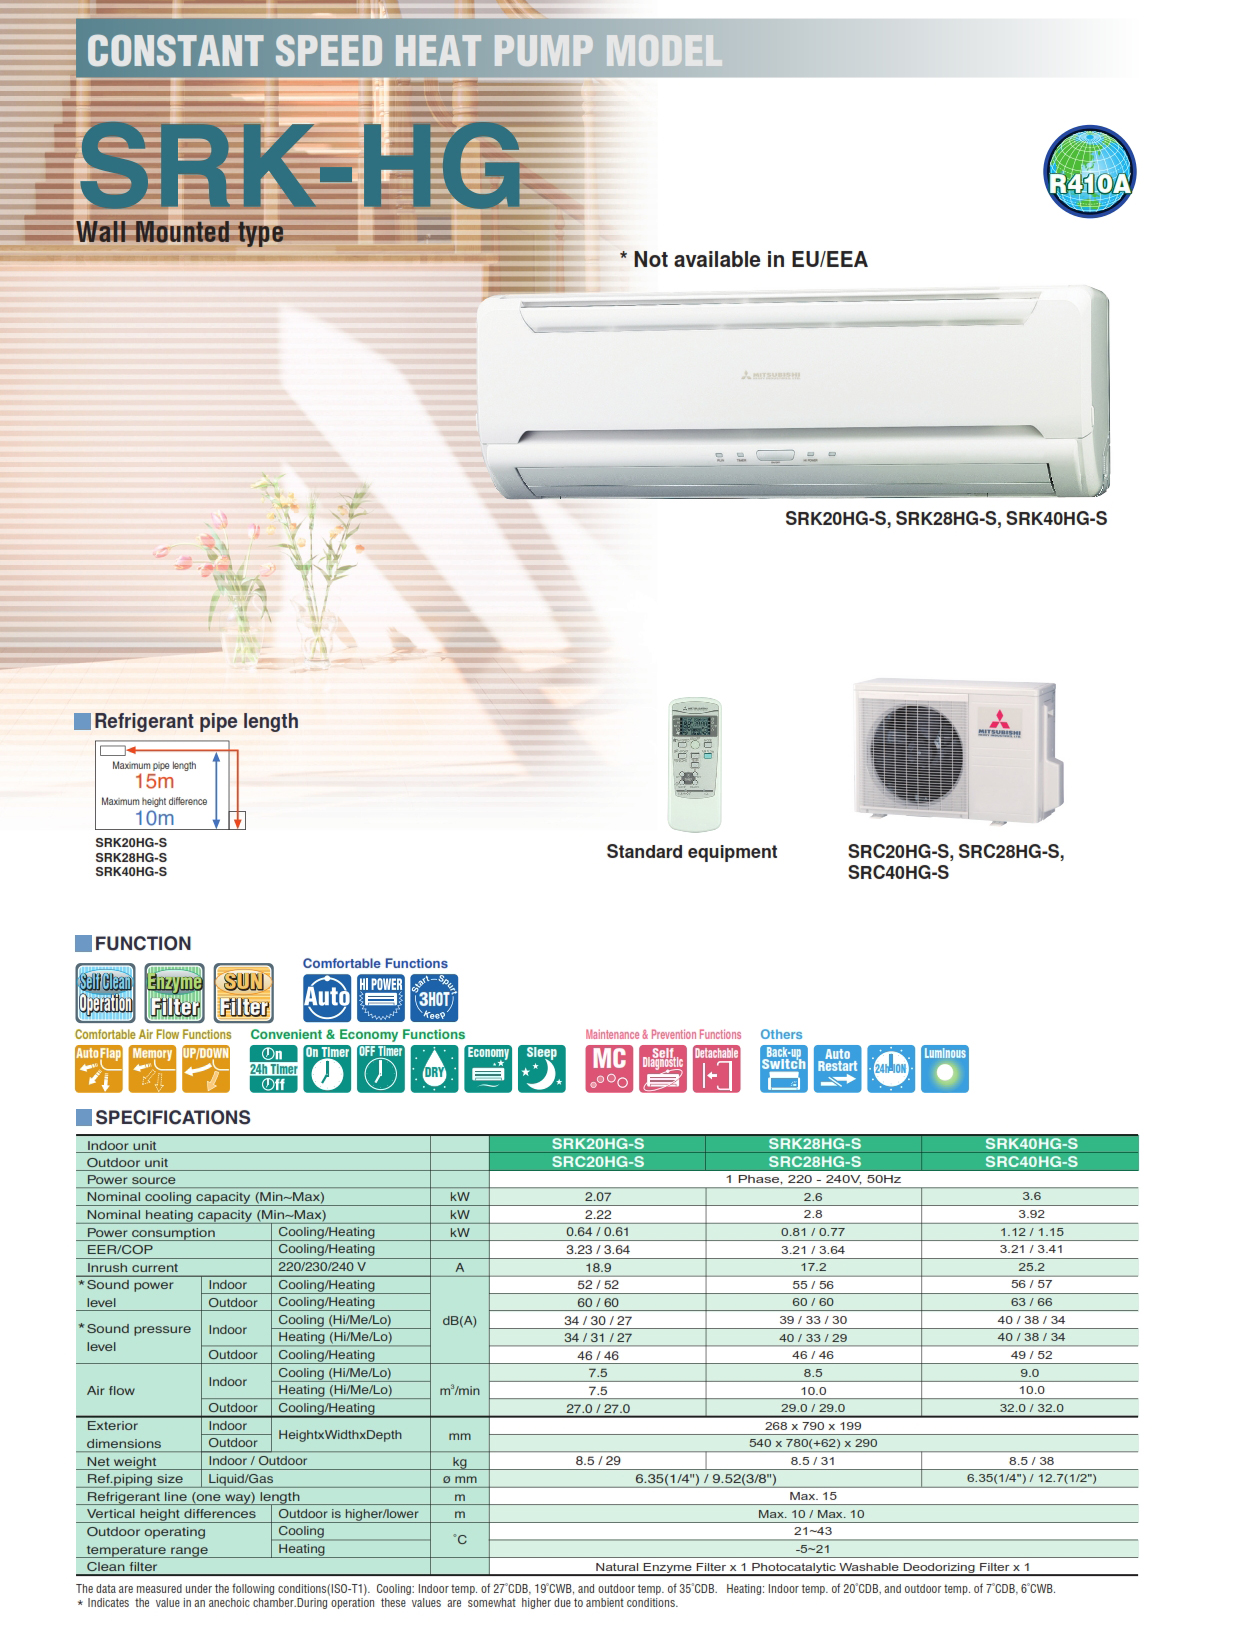 CONSTANT SPEED HEAT PUMP MODEL SRK-HG Wall Mounted type